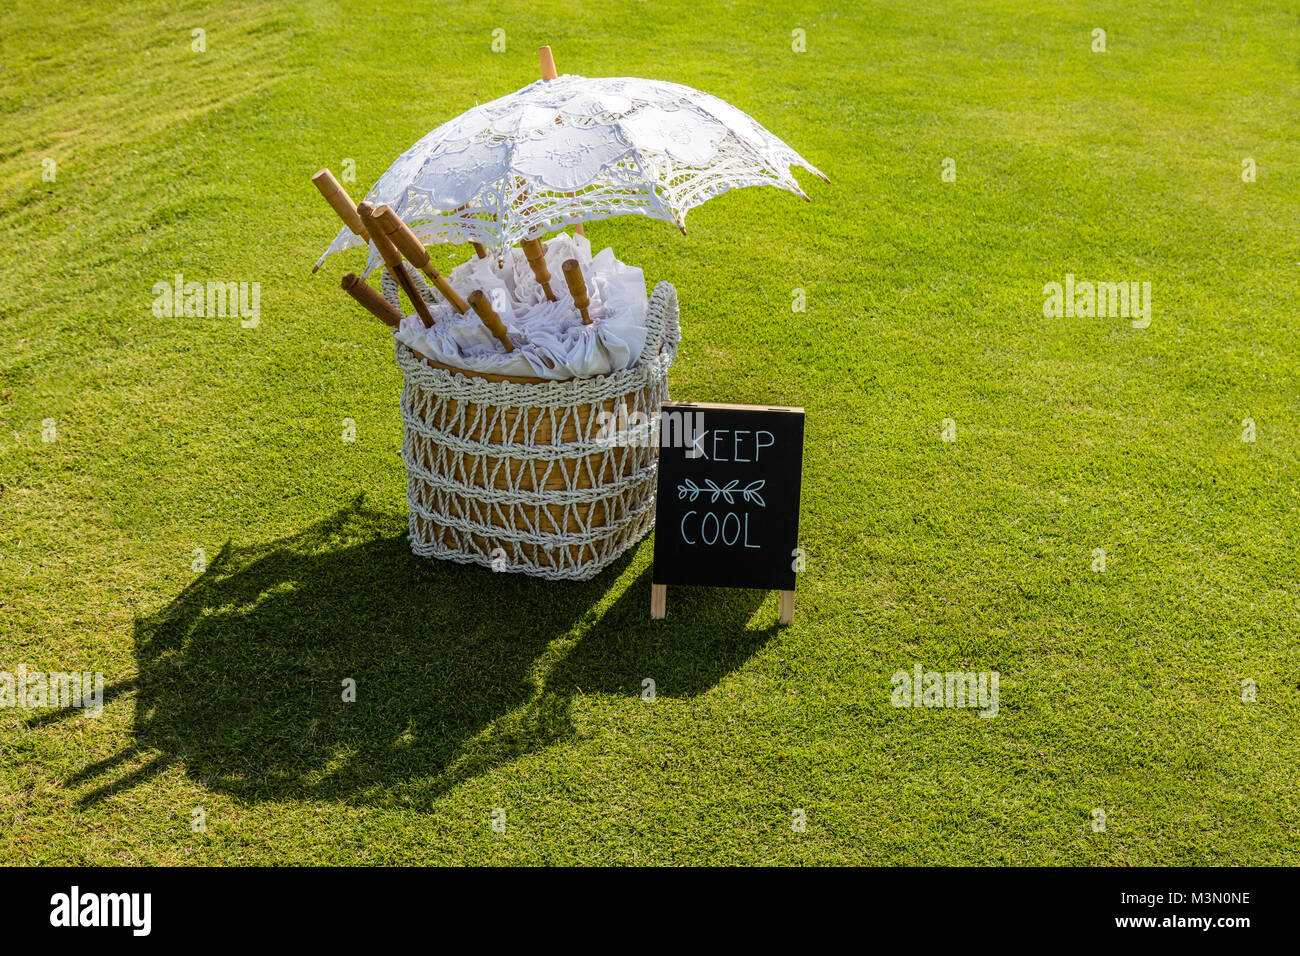 Wedding setup - white parasols for guests in a basket and a sigh KEEP COOL, Bali, Indonesia - Stock Image